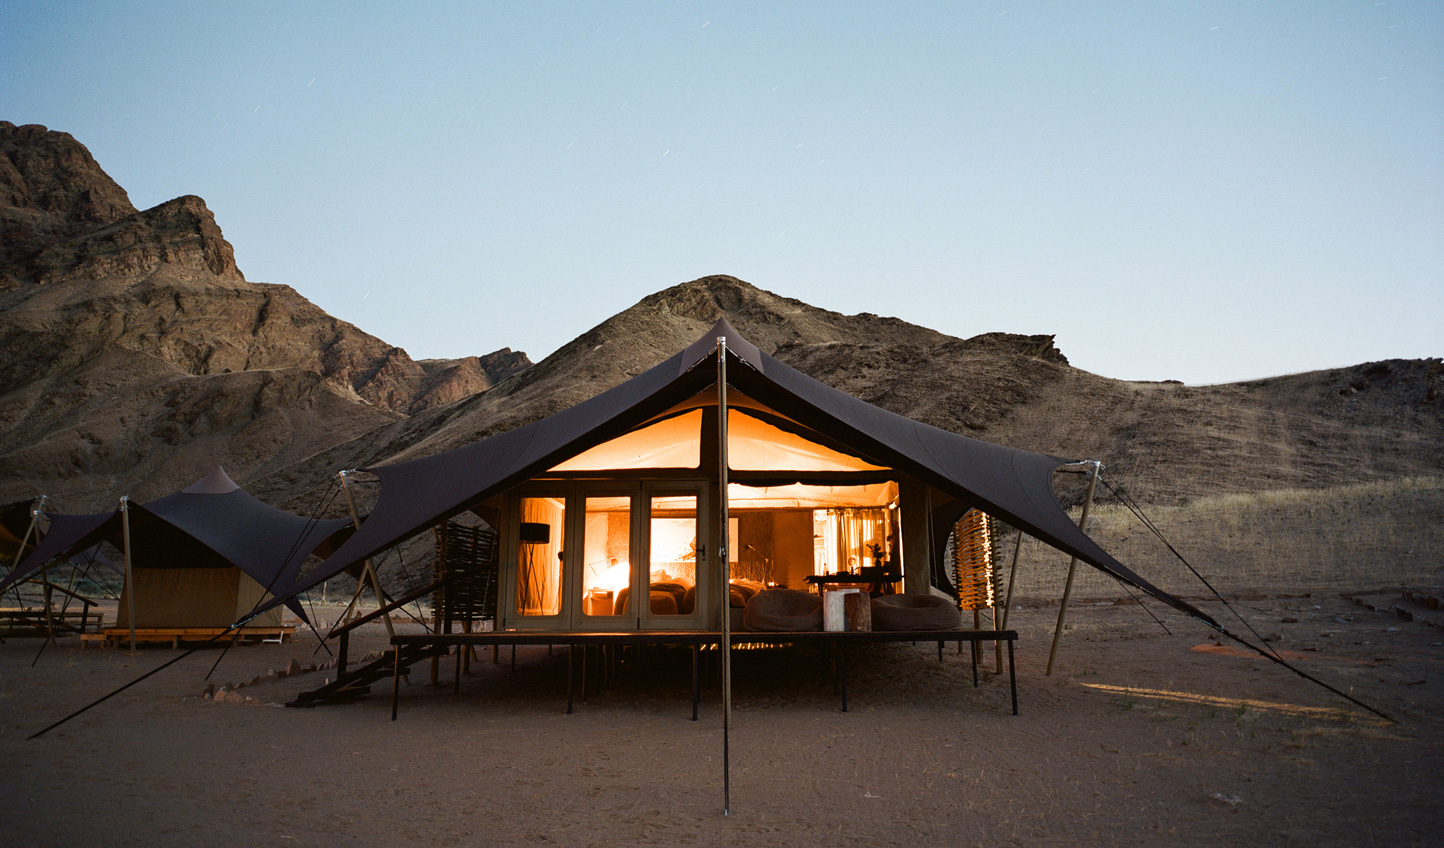 Sleep out in the wide open desert